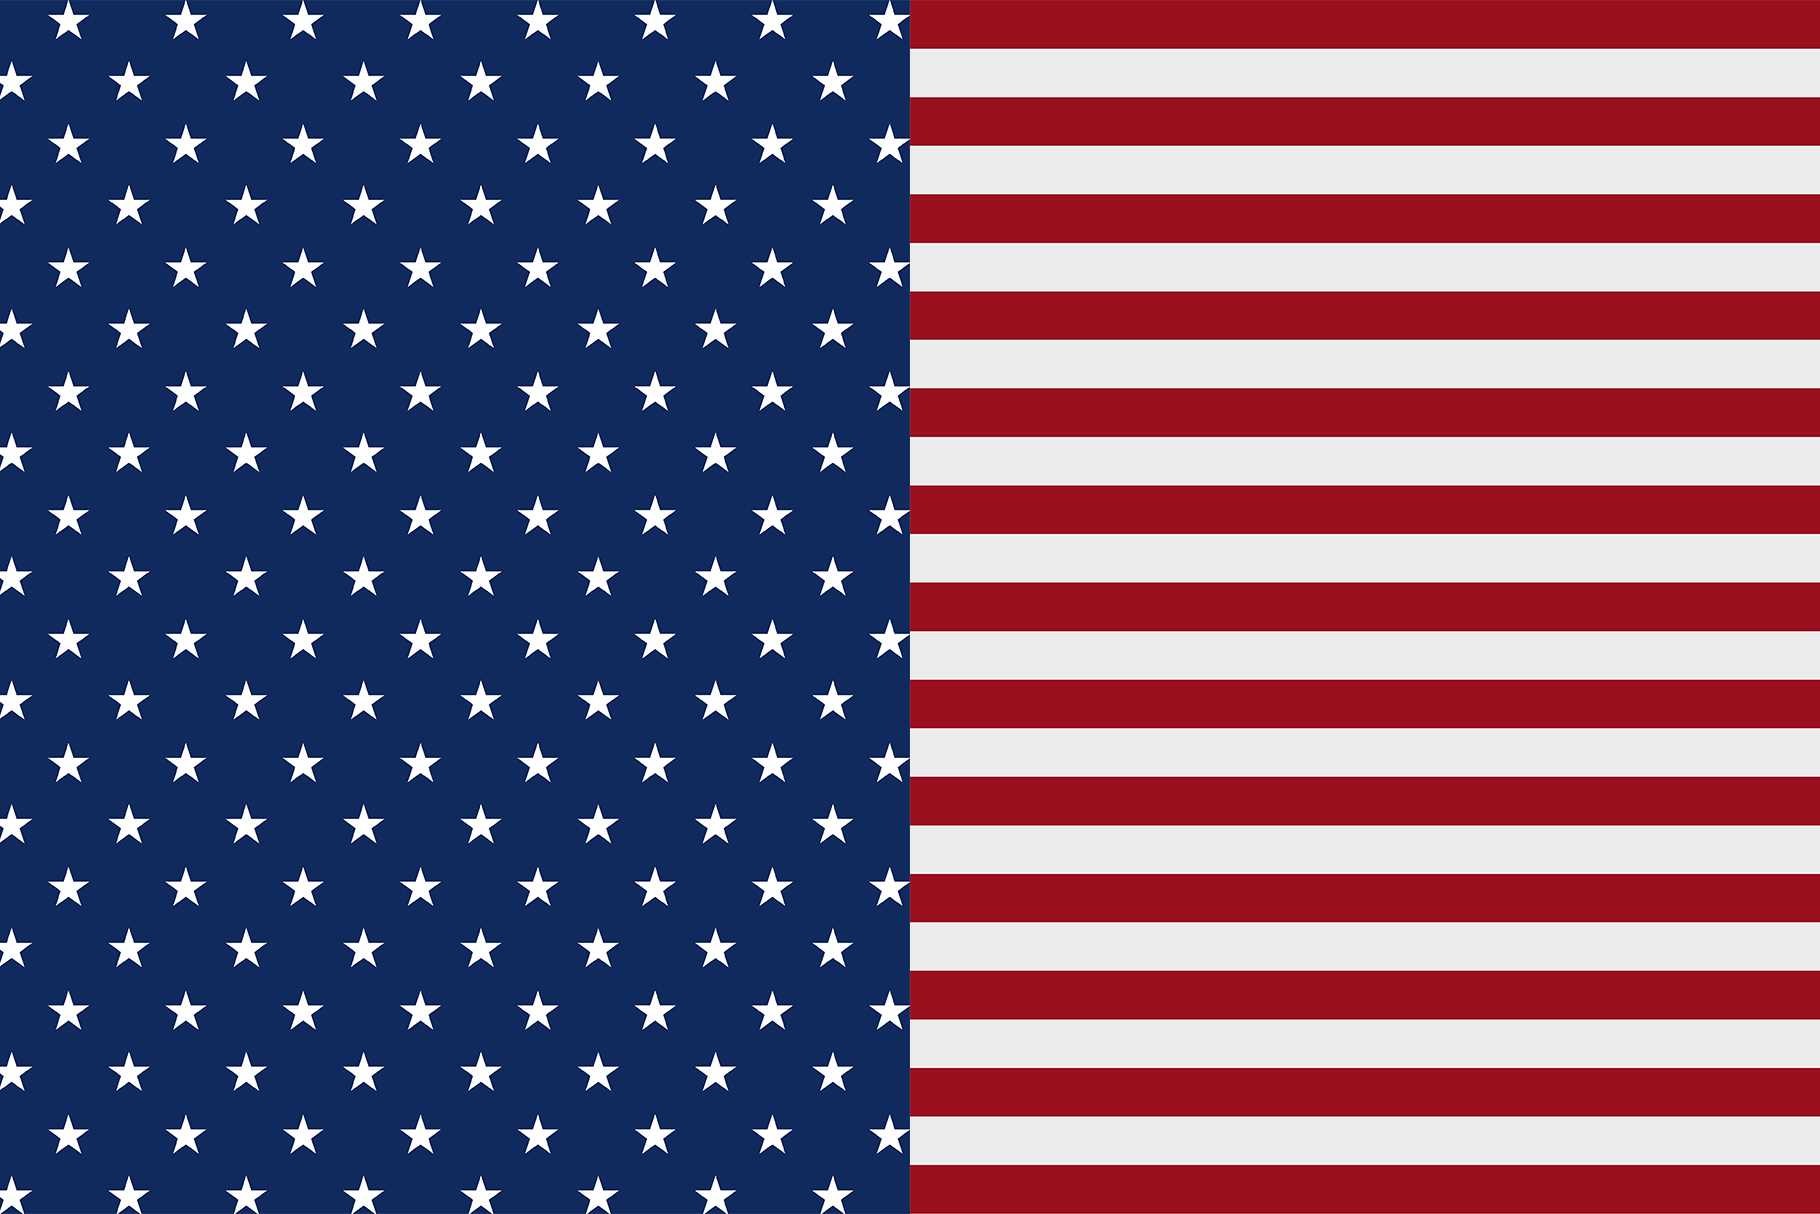 4 July 10 American Patterns example image 6